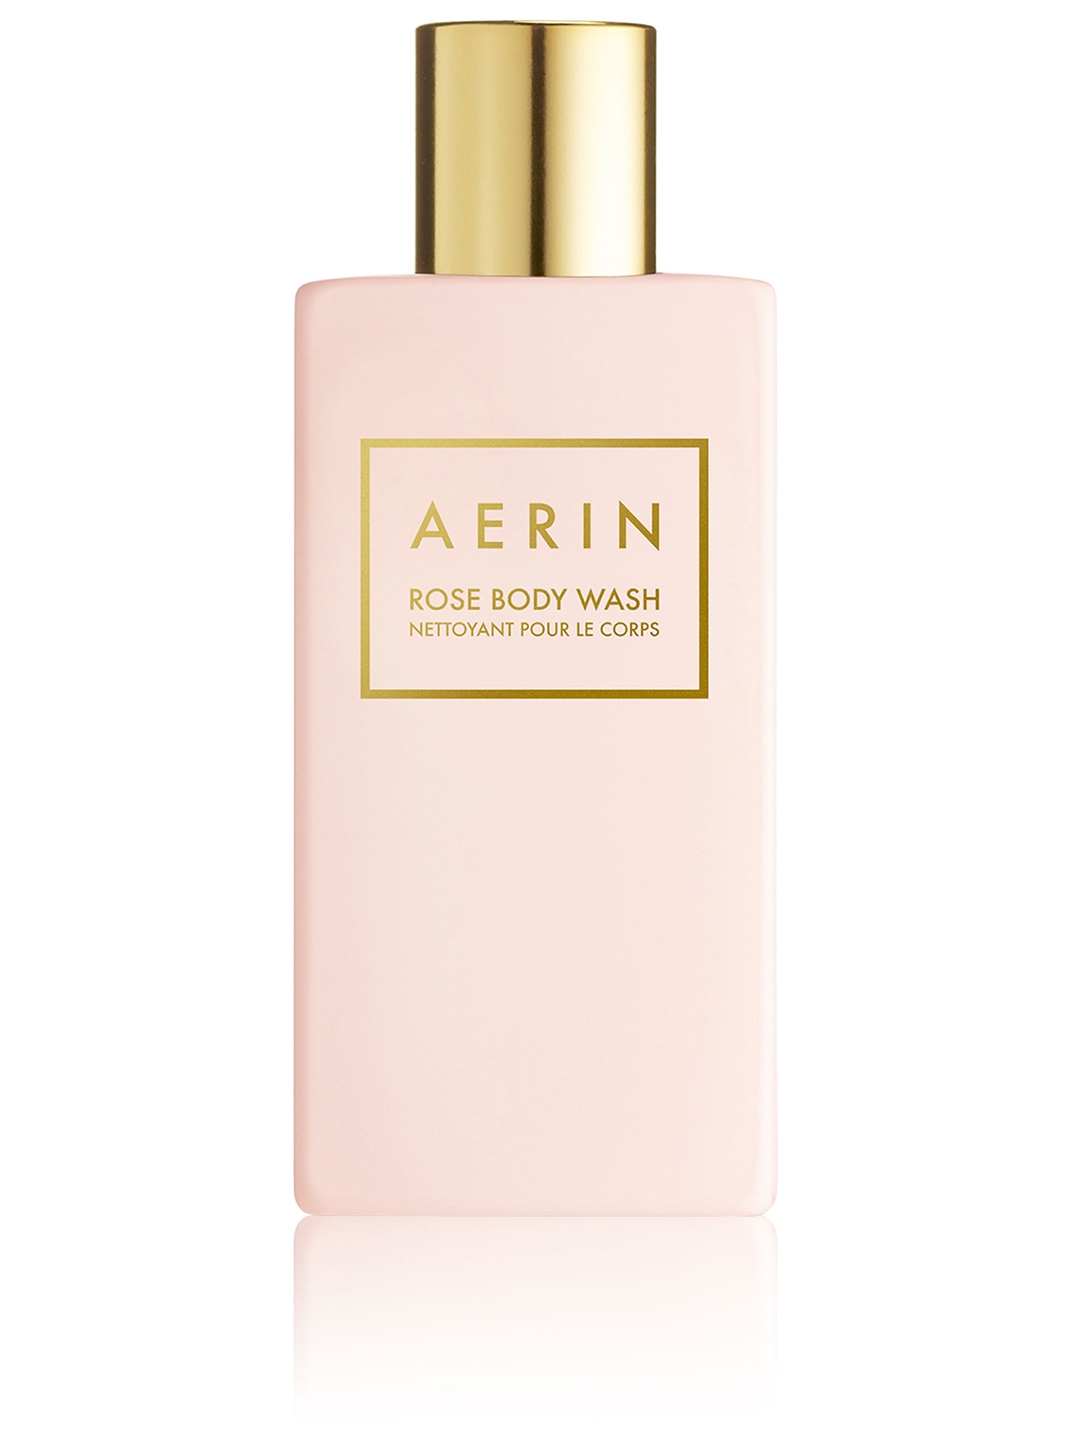 AERIN Rose Body Wash Beauty